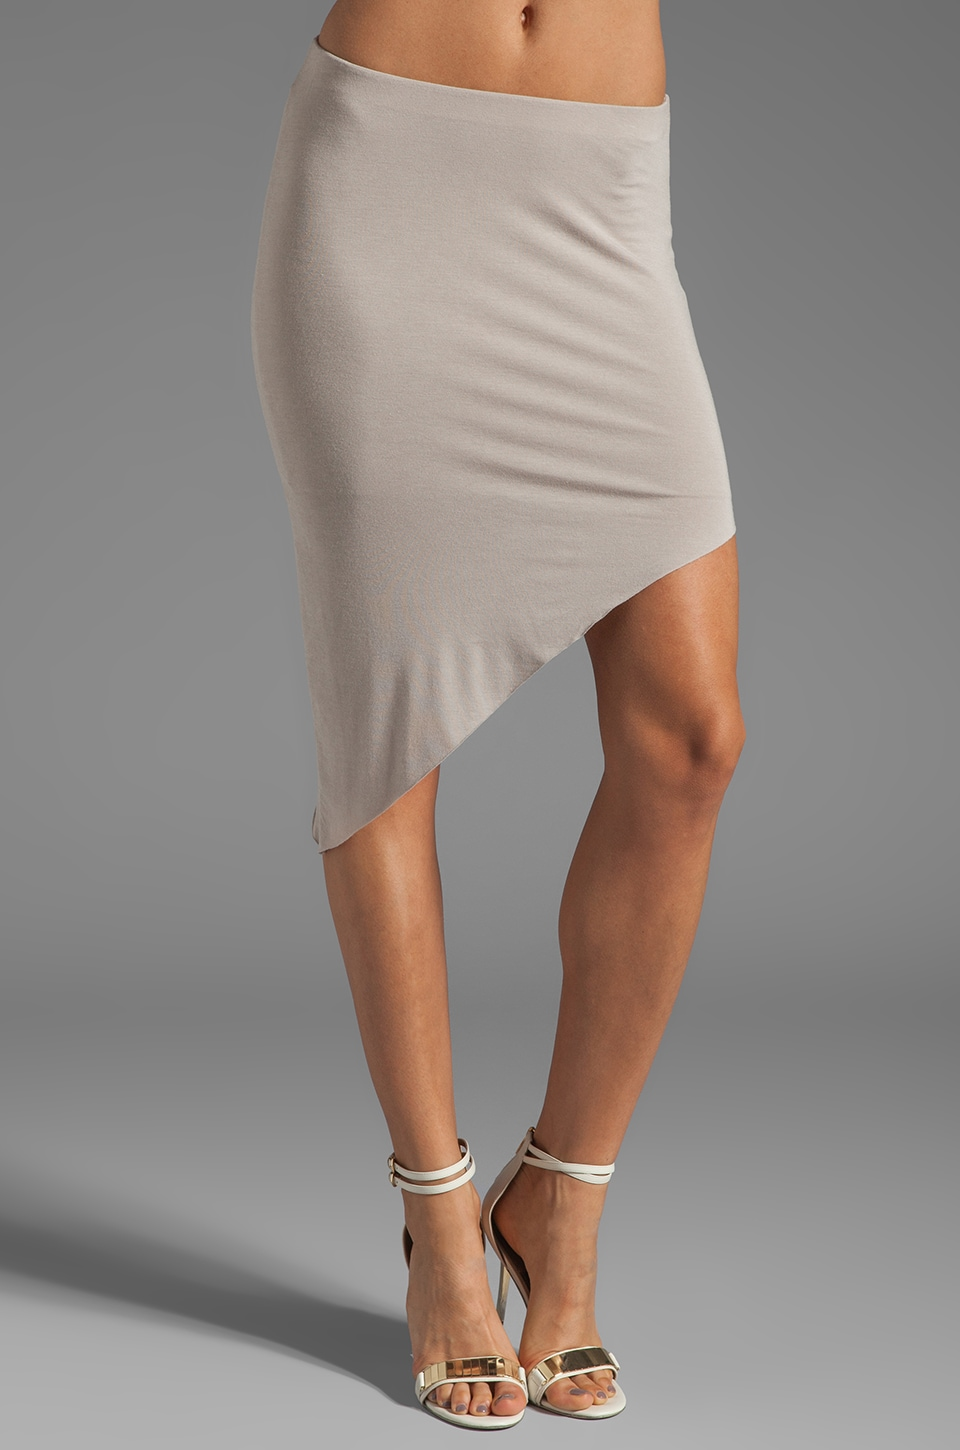 Bailey 44 Shark Tooth Skirt in Beige